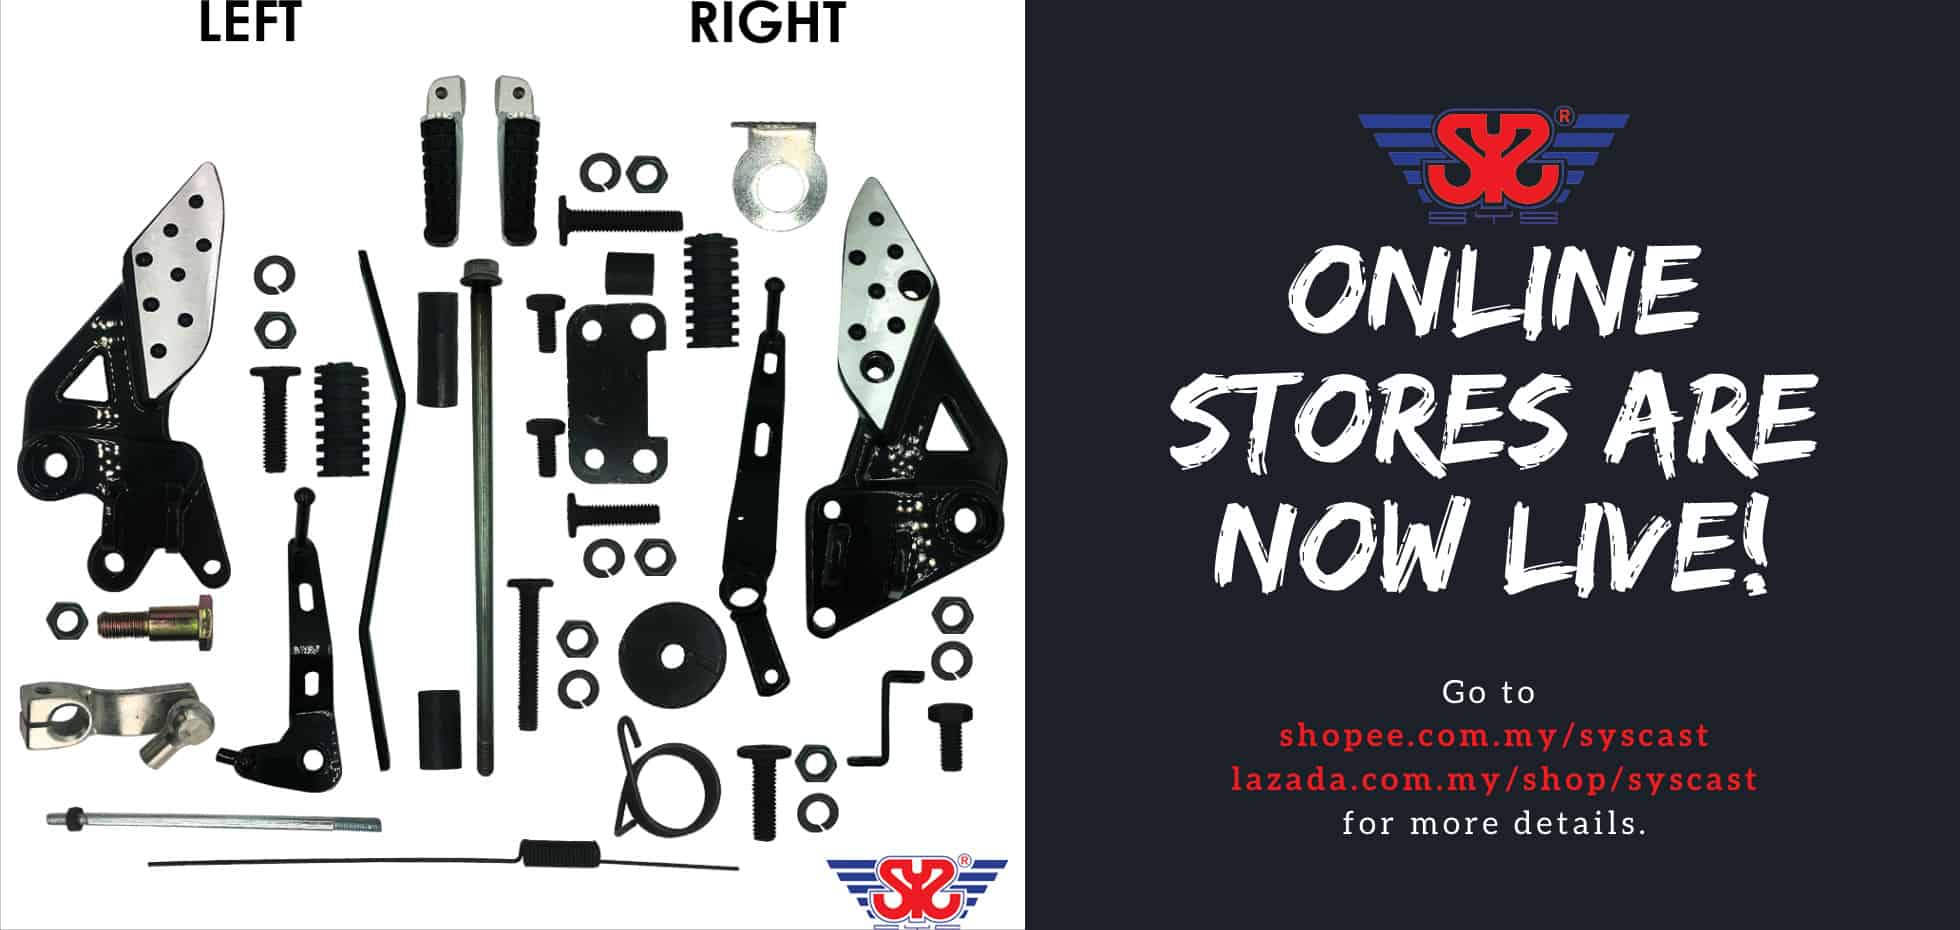 sys online store are now live